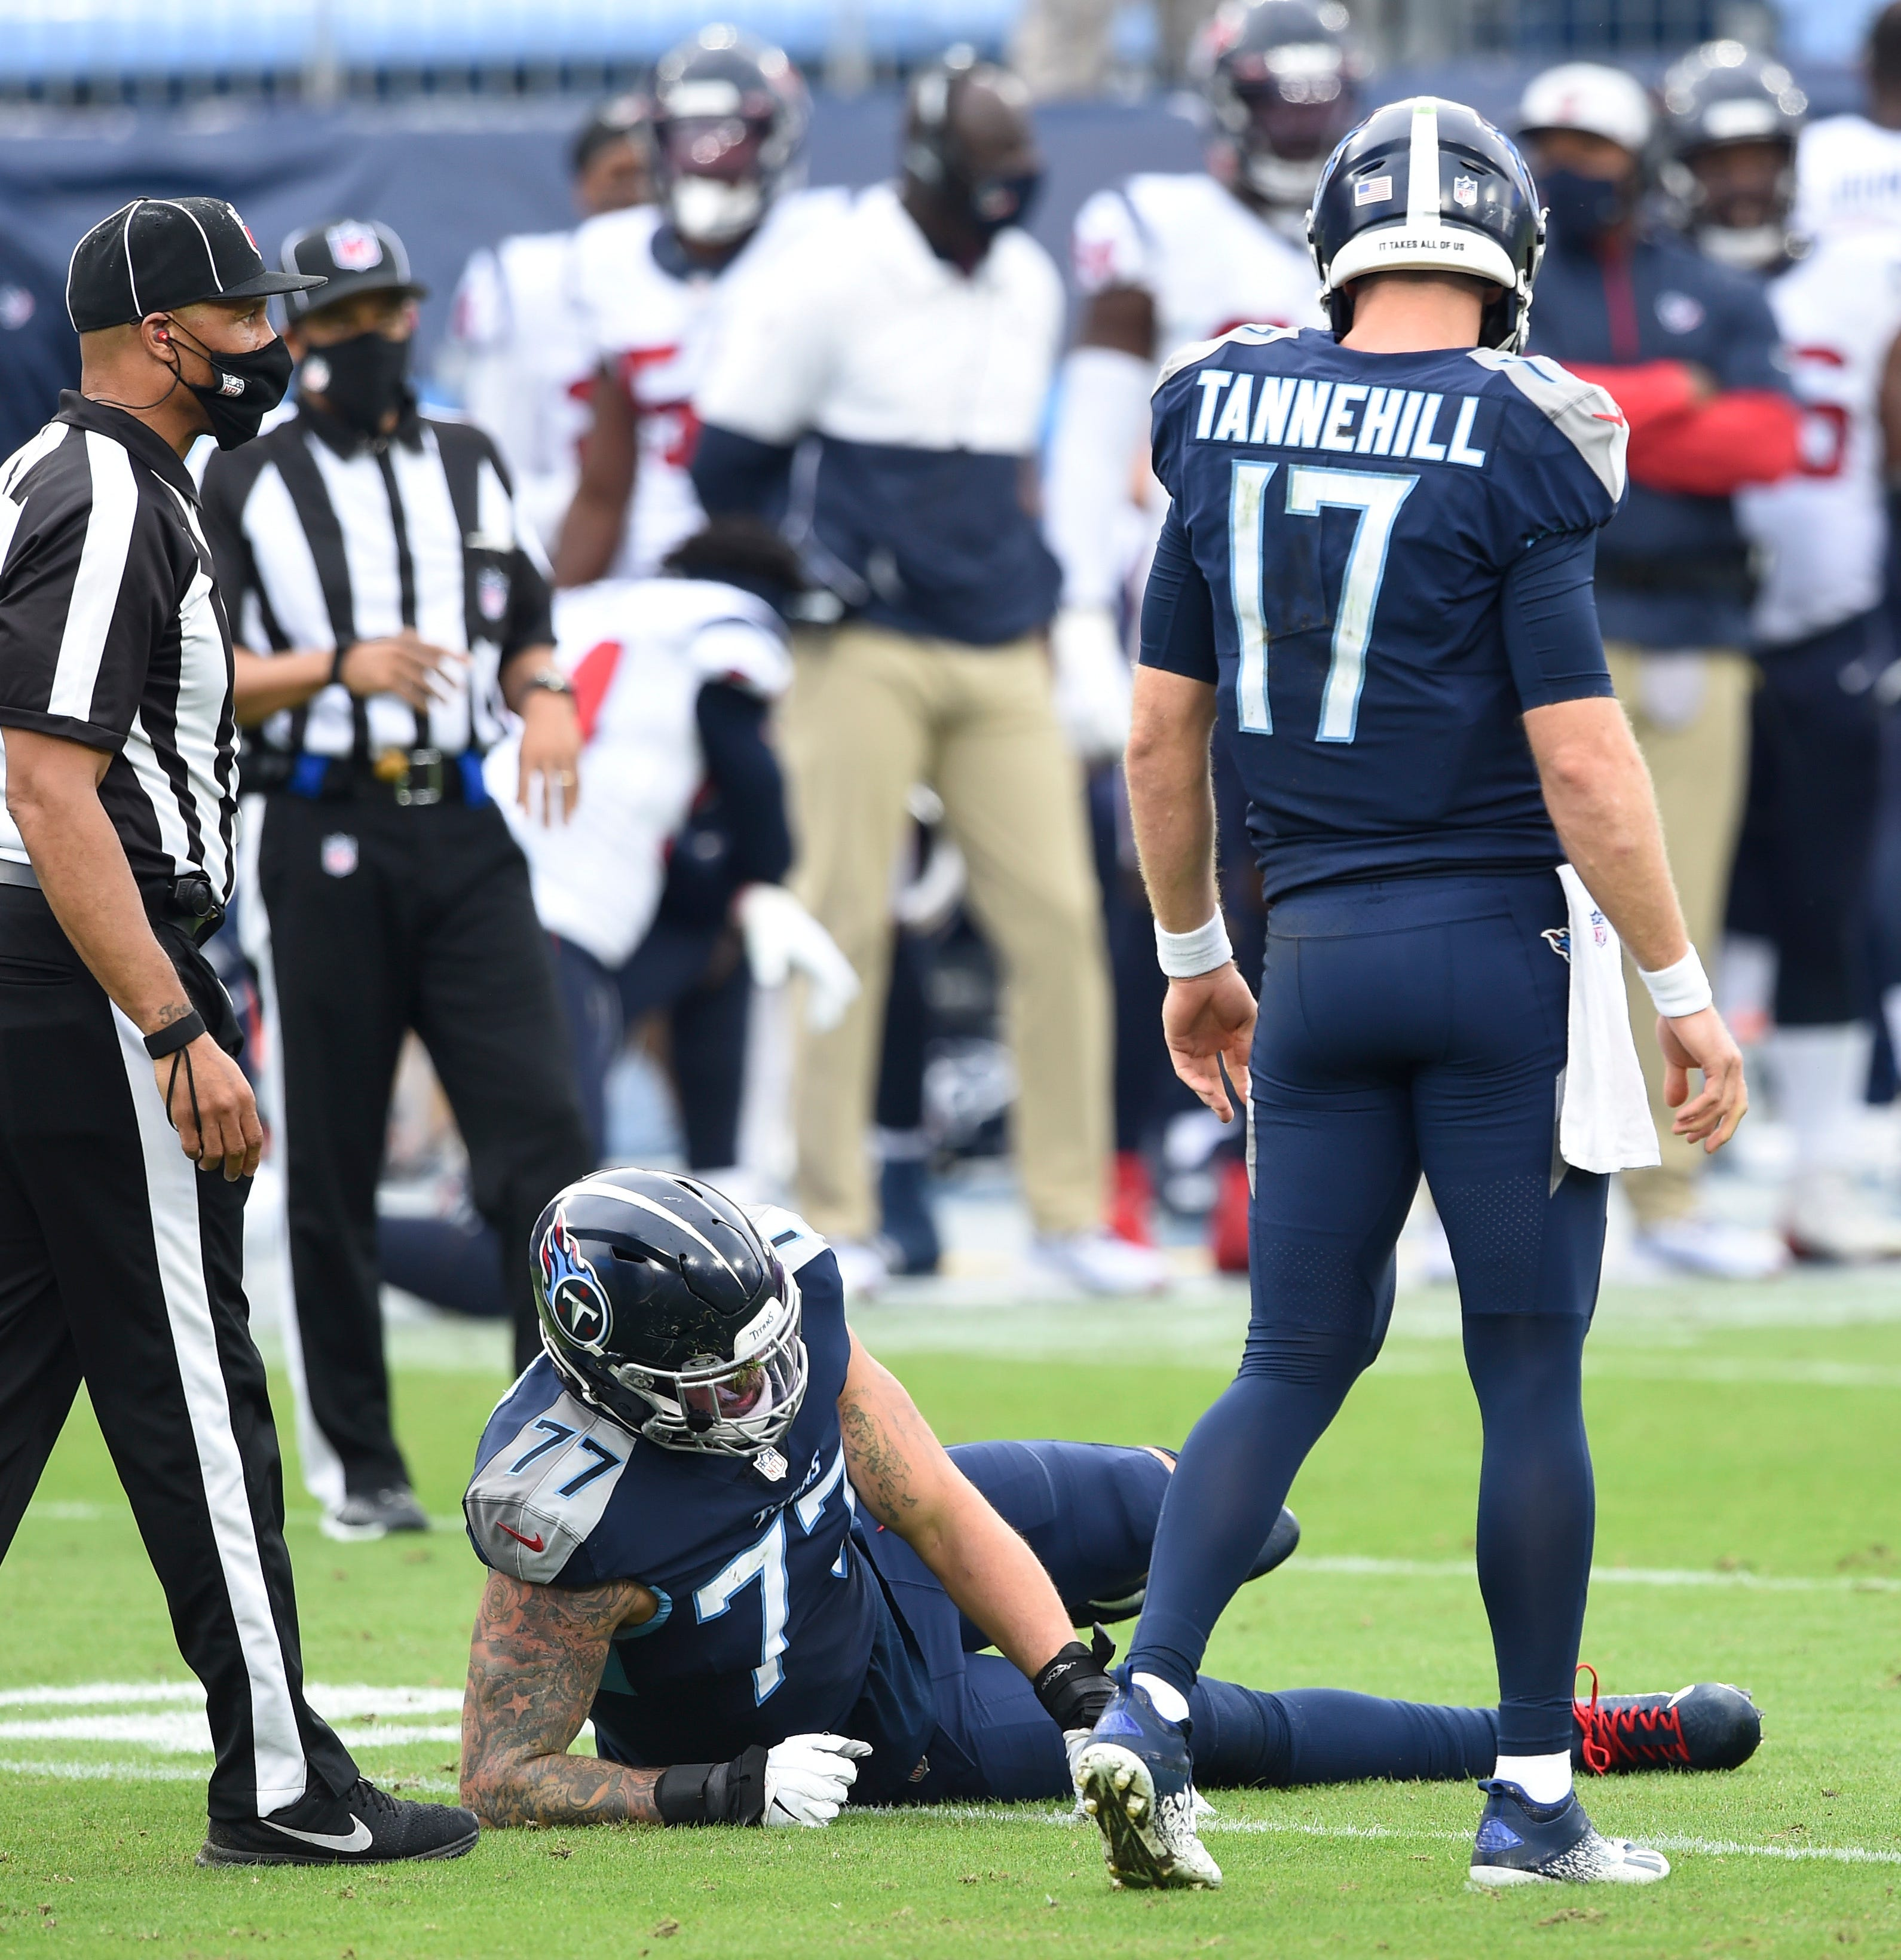 Titans left tackle Taylor Lewan confirms he suffered torn ACL